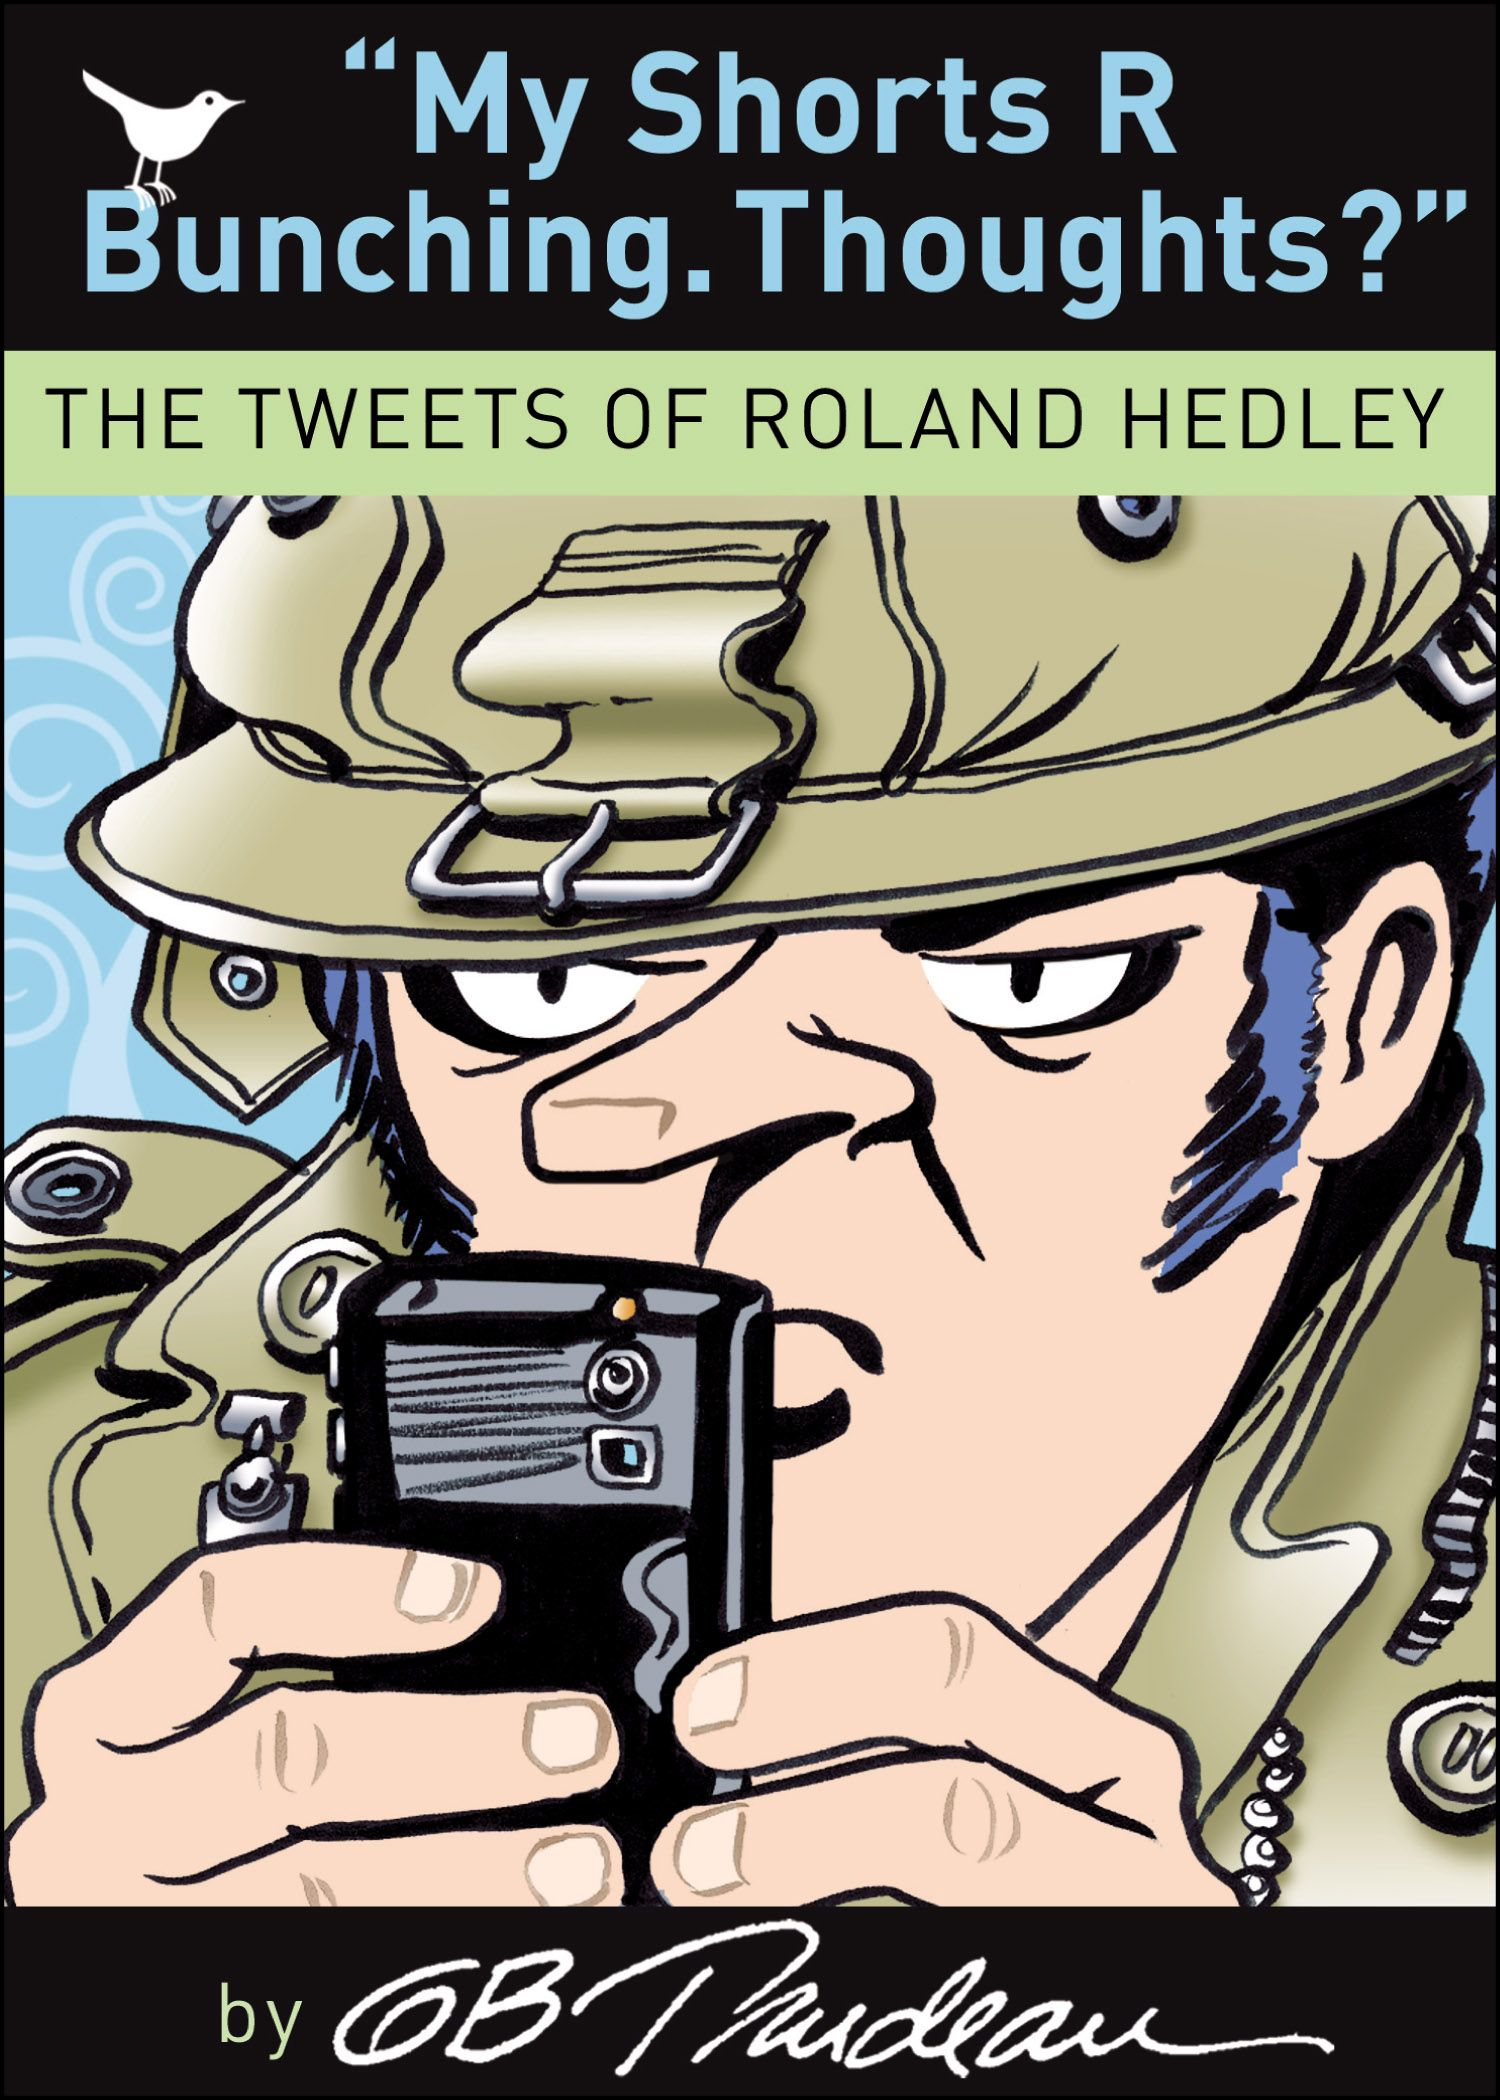 My Shorts R Bunching. Thoughts?: The Tweets of Roland Hedley By: G. B. Trudeau